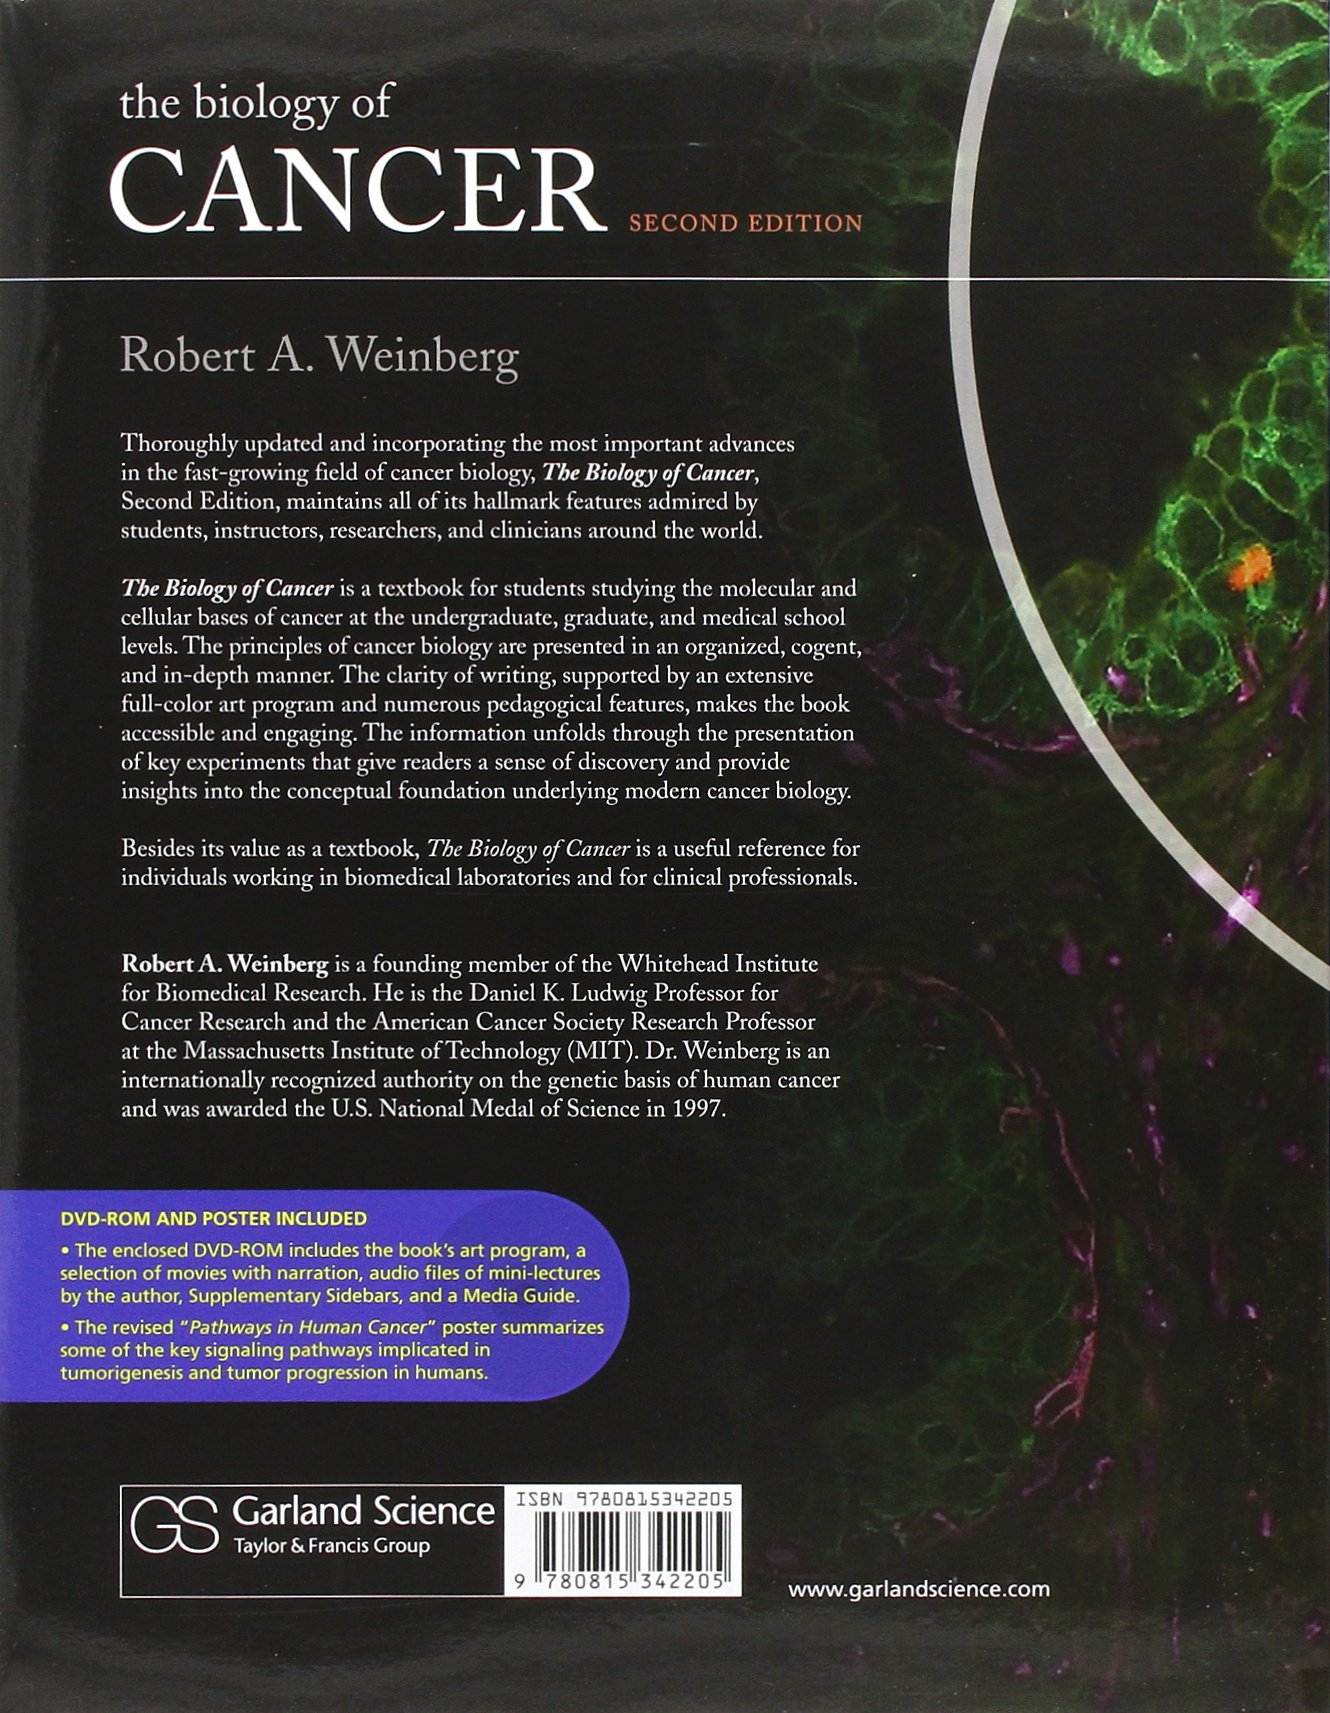 The biology of cancer by robert a weinberg free download.